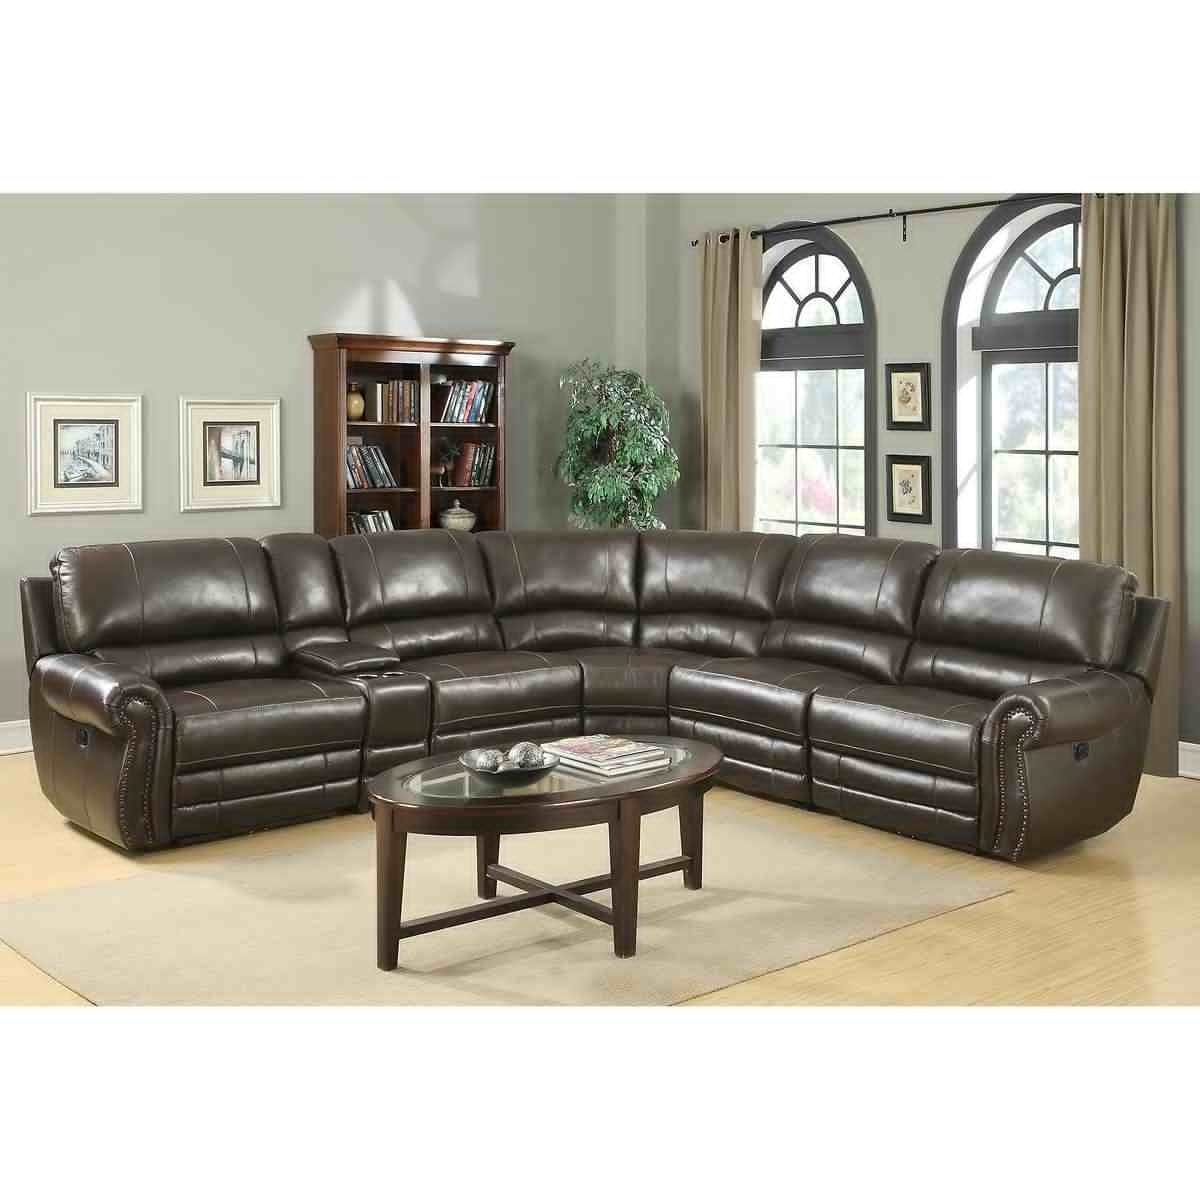 Minneapolis Sectional Sofas In Recent Sectional Sofa Design: Leather Sectional Sofas Closeouts Recliners (View 6 of 15)